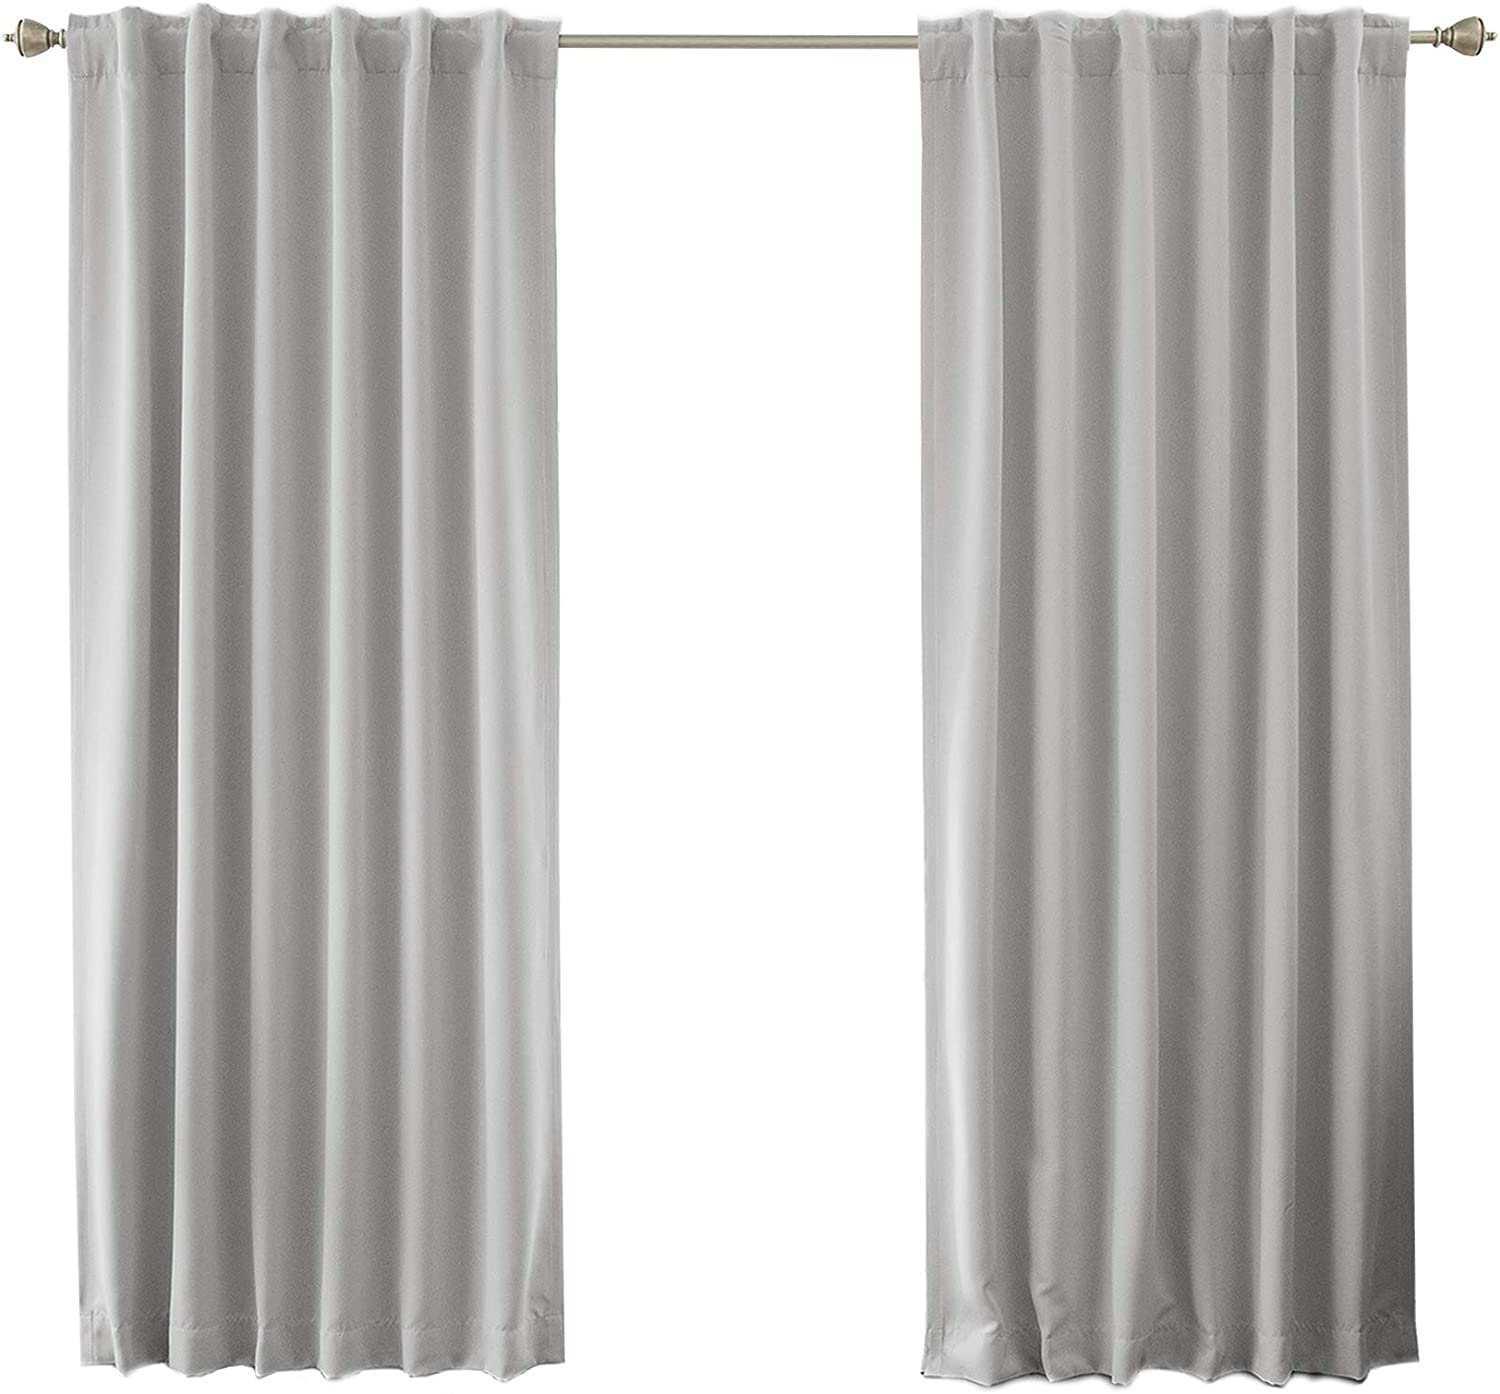 """Best Home Fashion Premium Blackout Curtain Panels - Solid Thermal Insulated Window Treatment Blackout for Bedroom - Back Tab & Rod Pocket – LTGREY - 52"""" W x 84"""" L - (Set of 2 Panels)"""